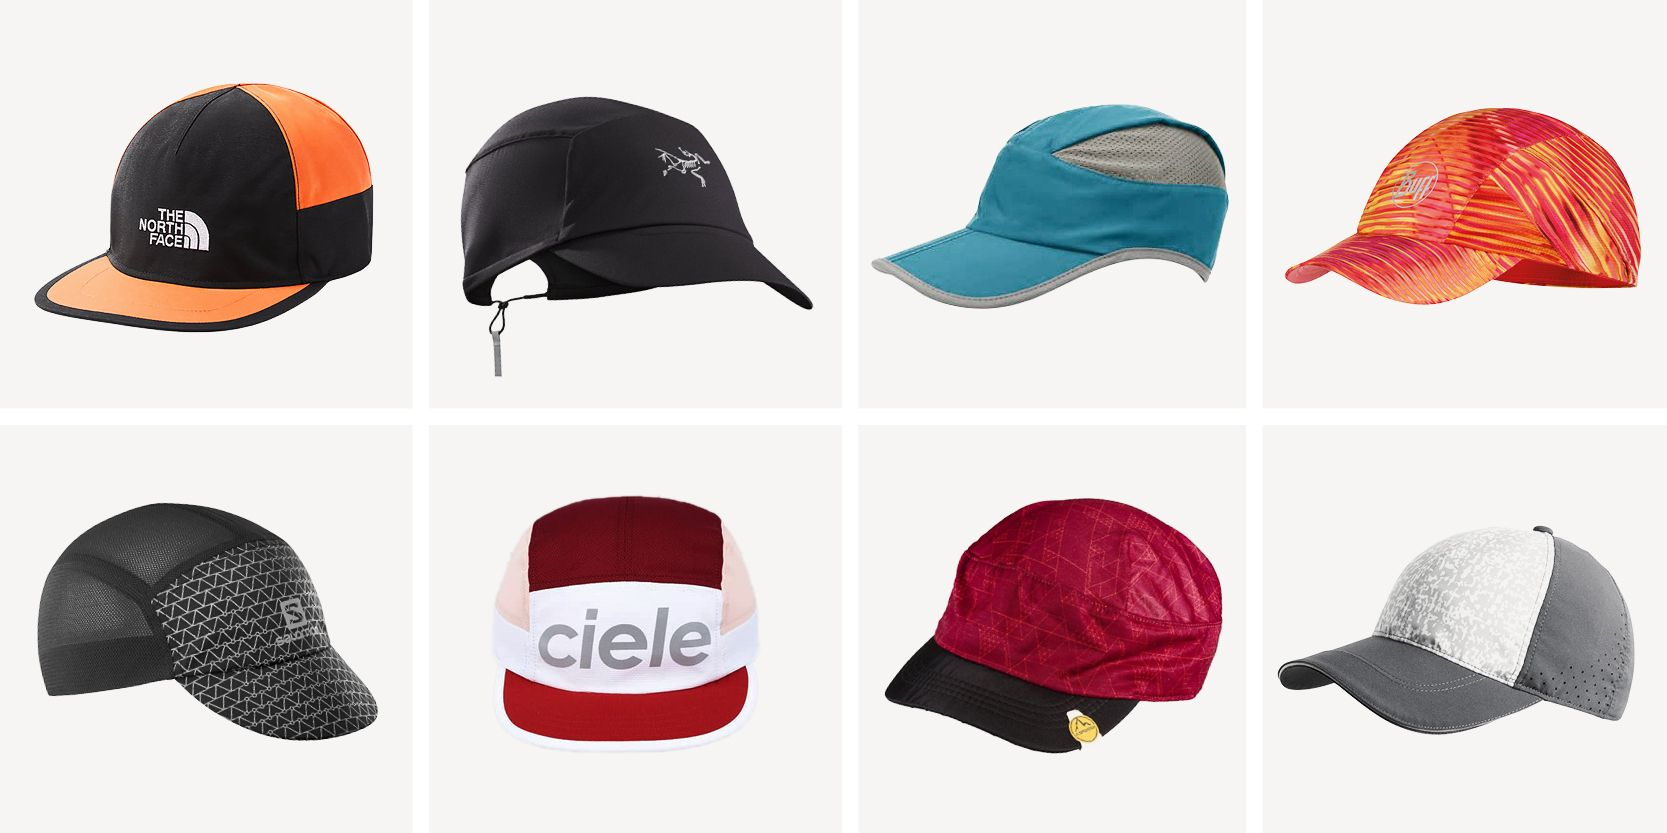 1c8e8ccd Running Hats 2019 | Caps for Running